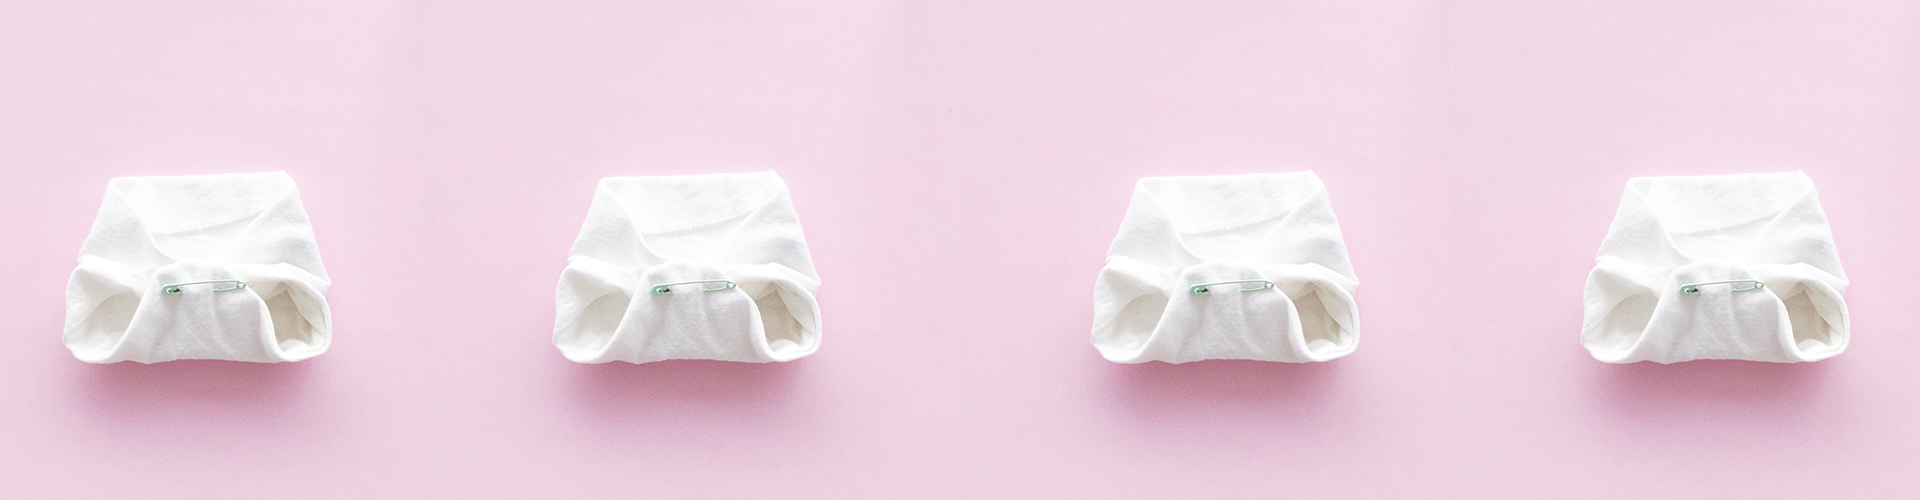 cloth nappies with pink background - How often should a newborn poo? An update on Sydney